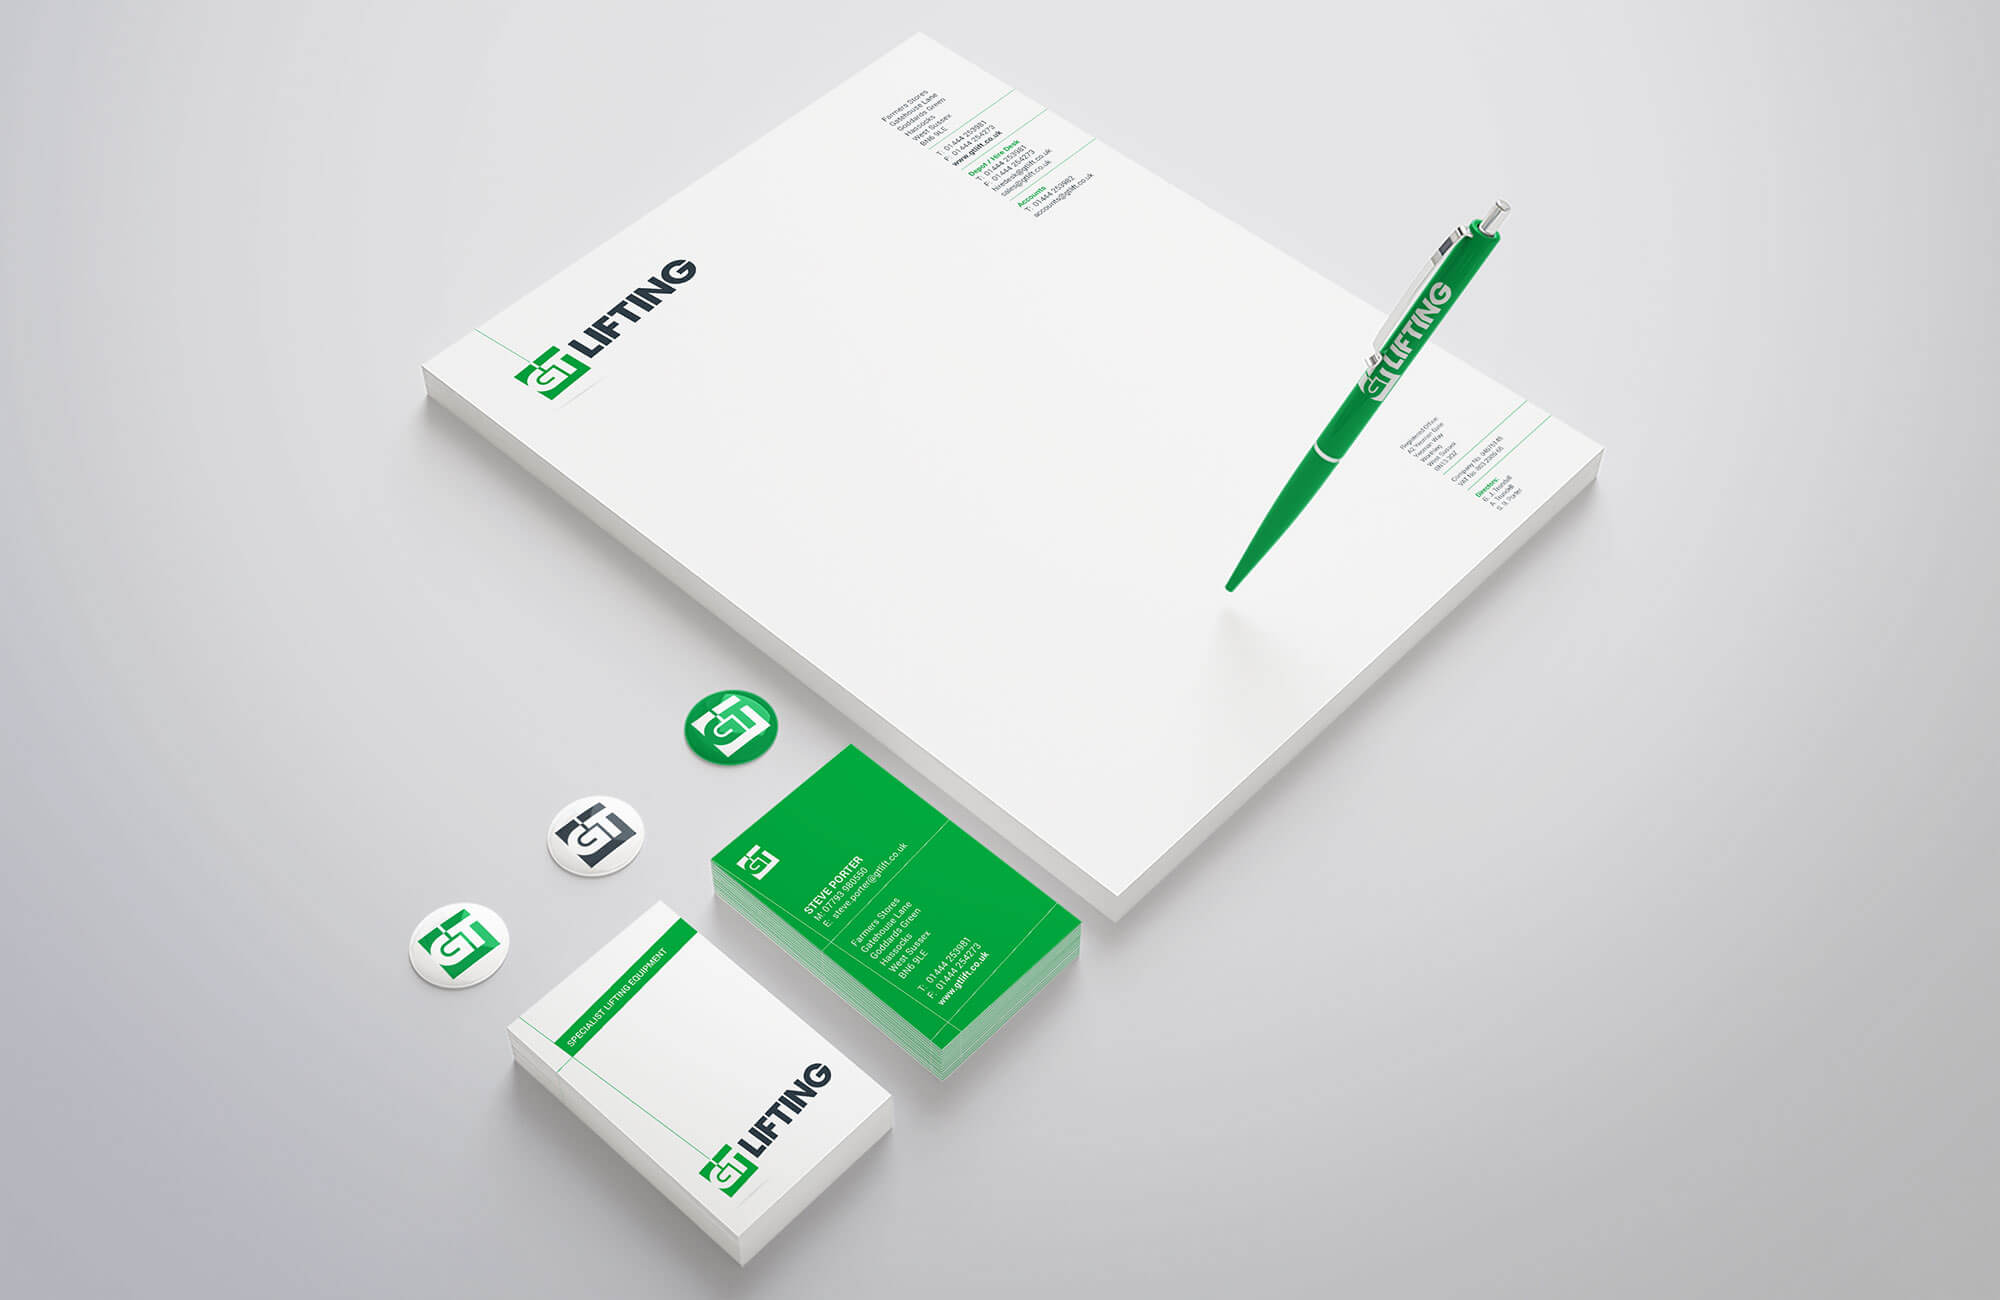 GT Lifting Stationery Design Concepts